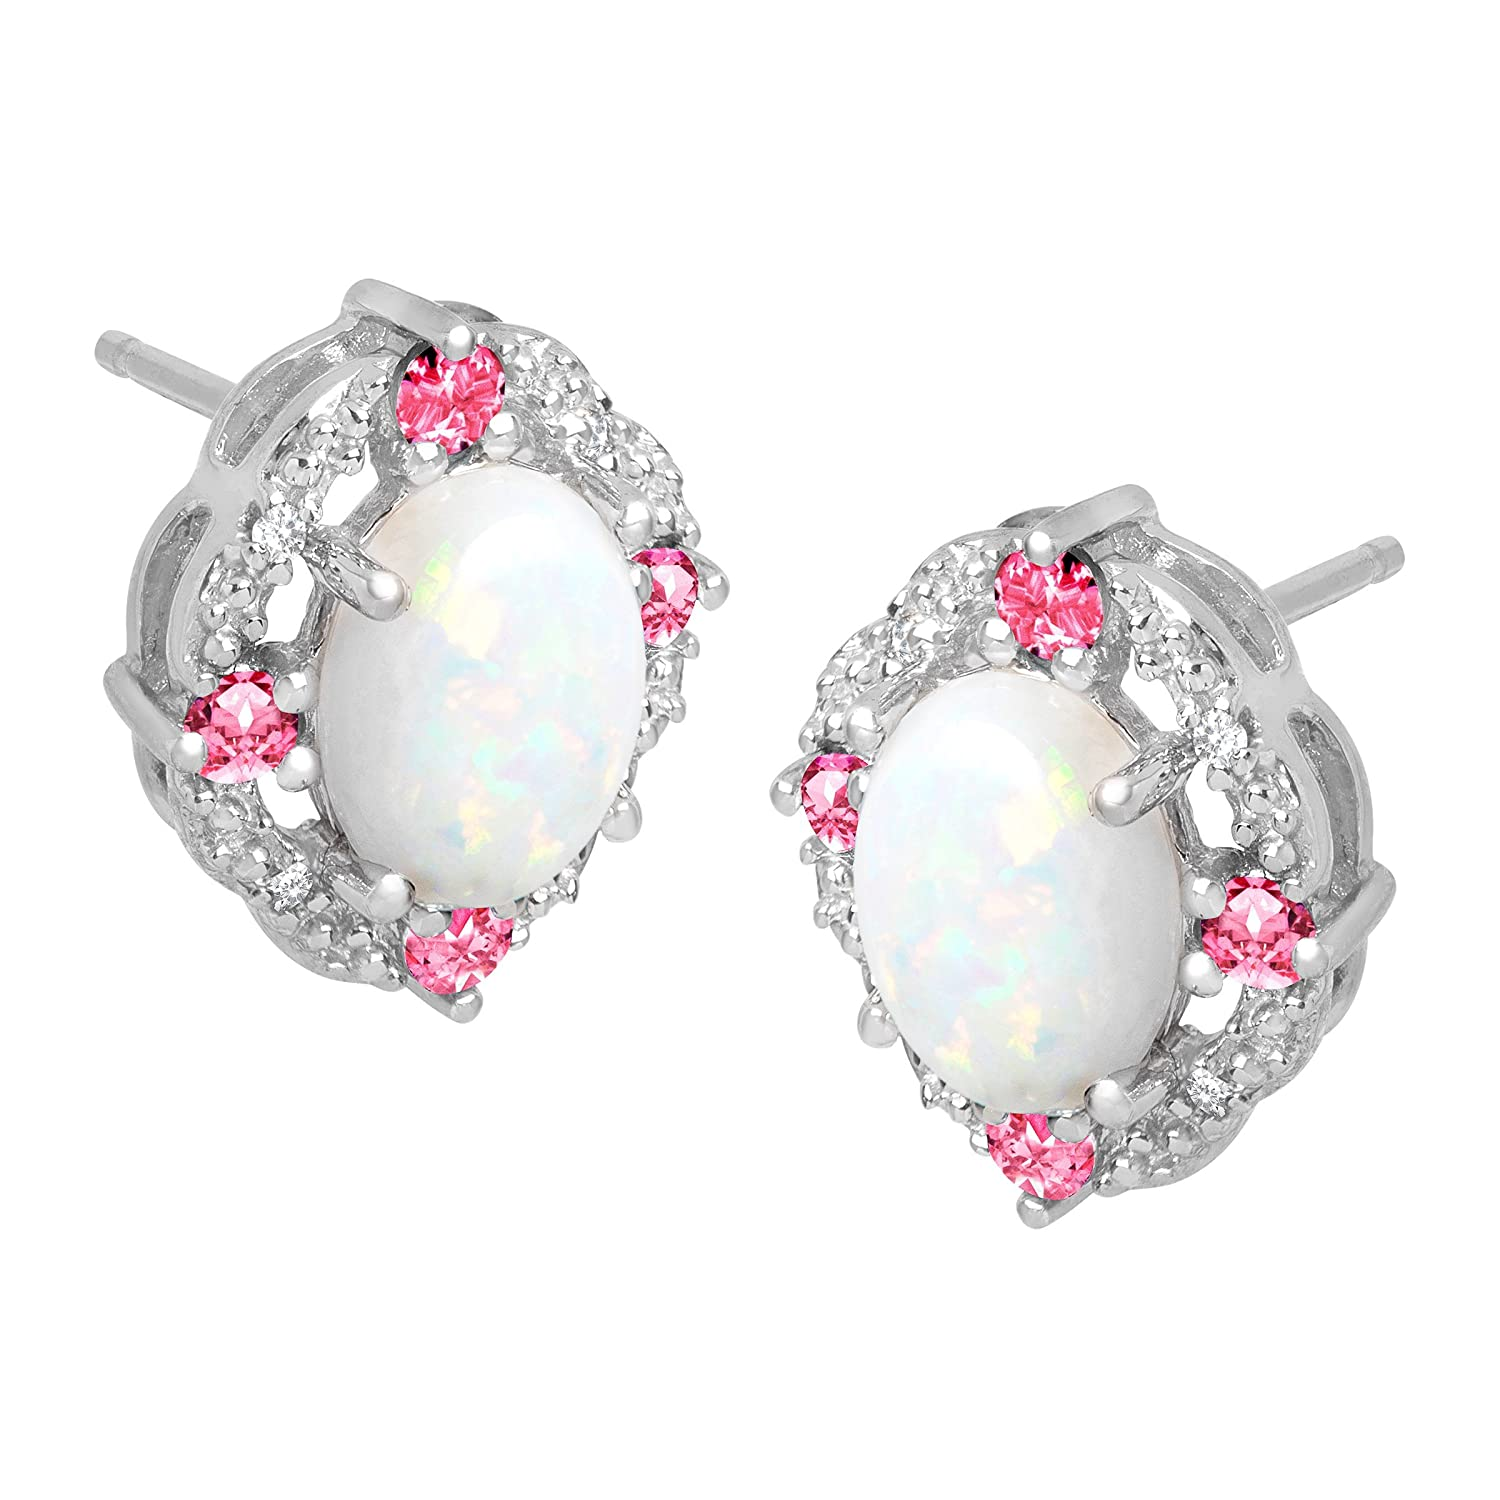 1 1 2 ct Created Opal Pink Sapphire Stud Earrings with Diamonds in Sterling Silver